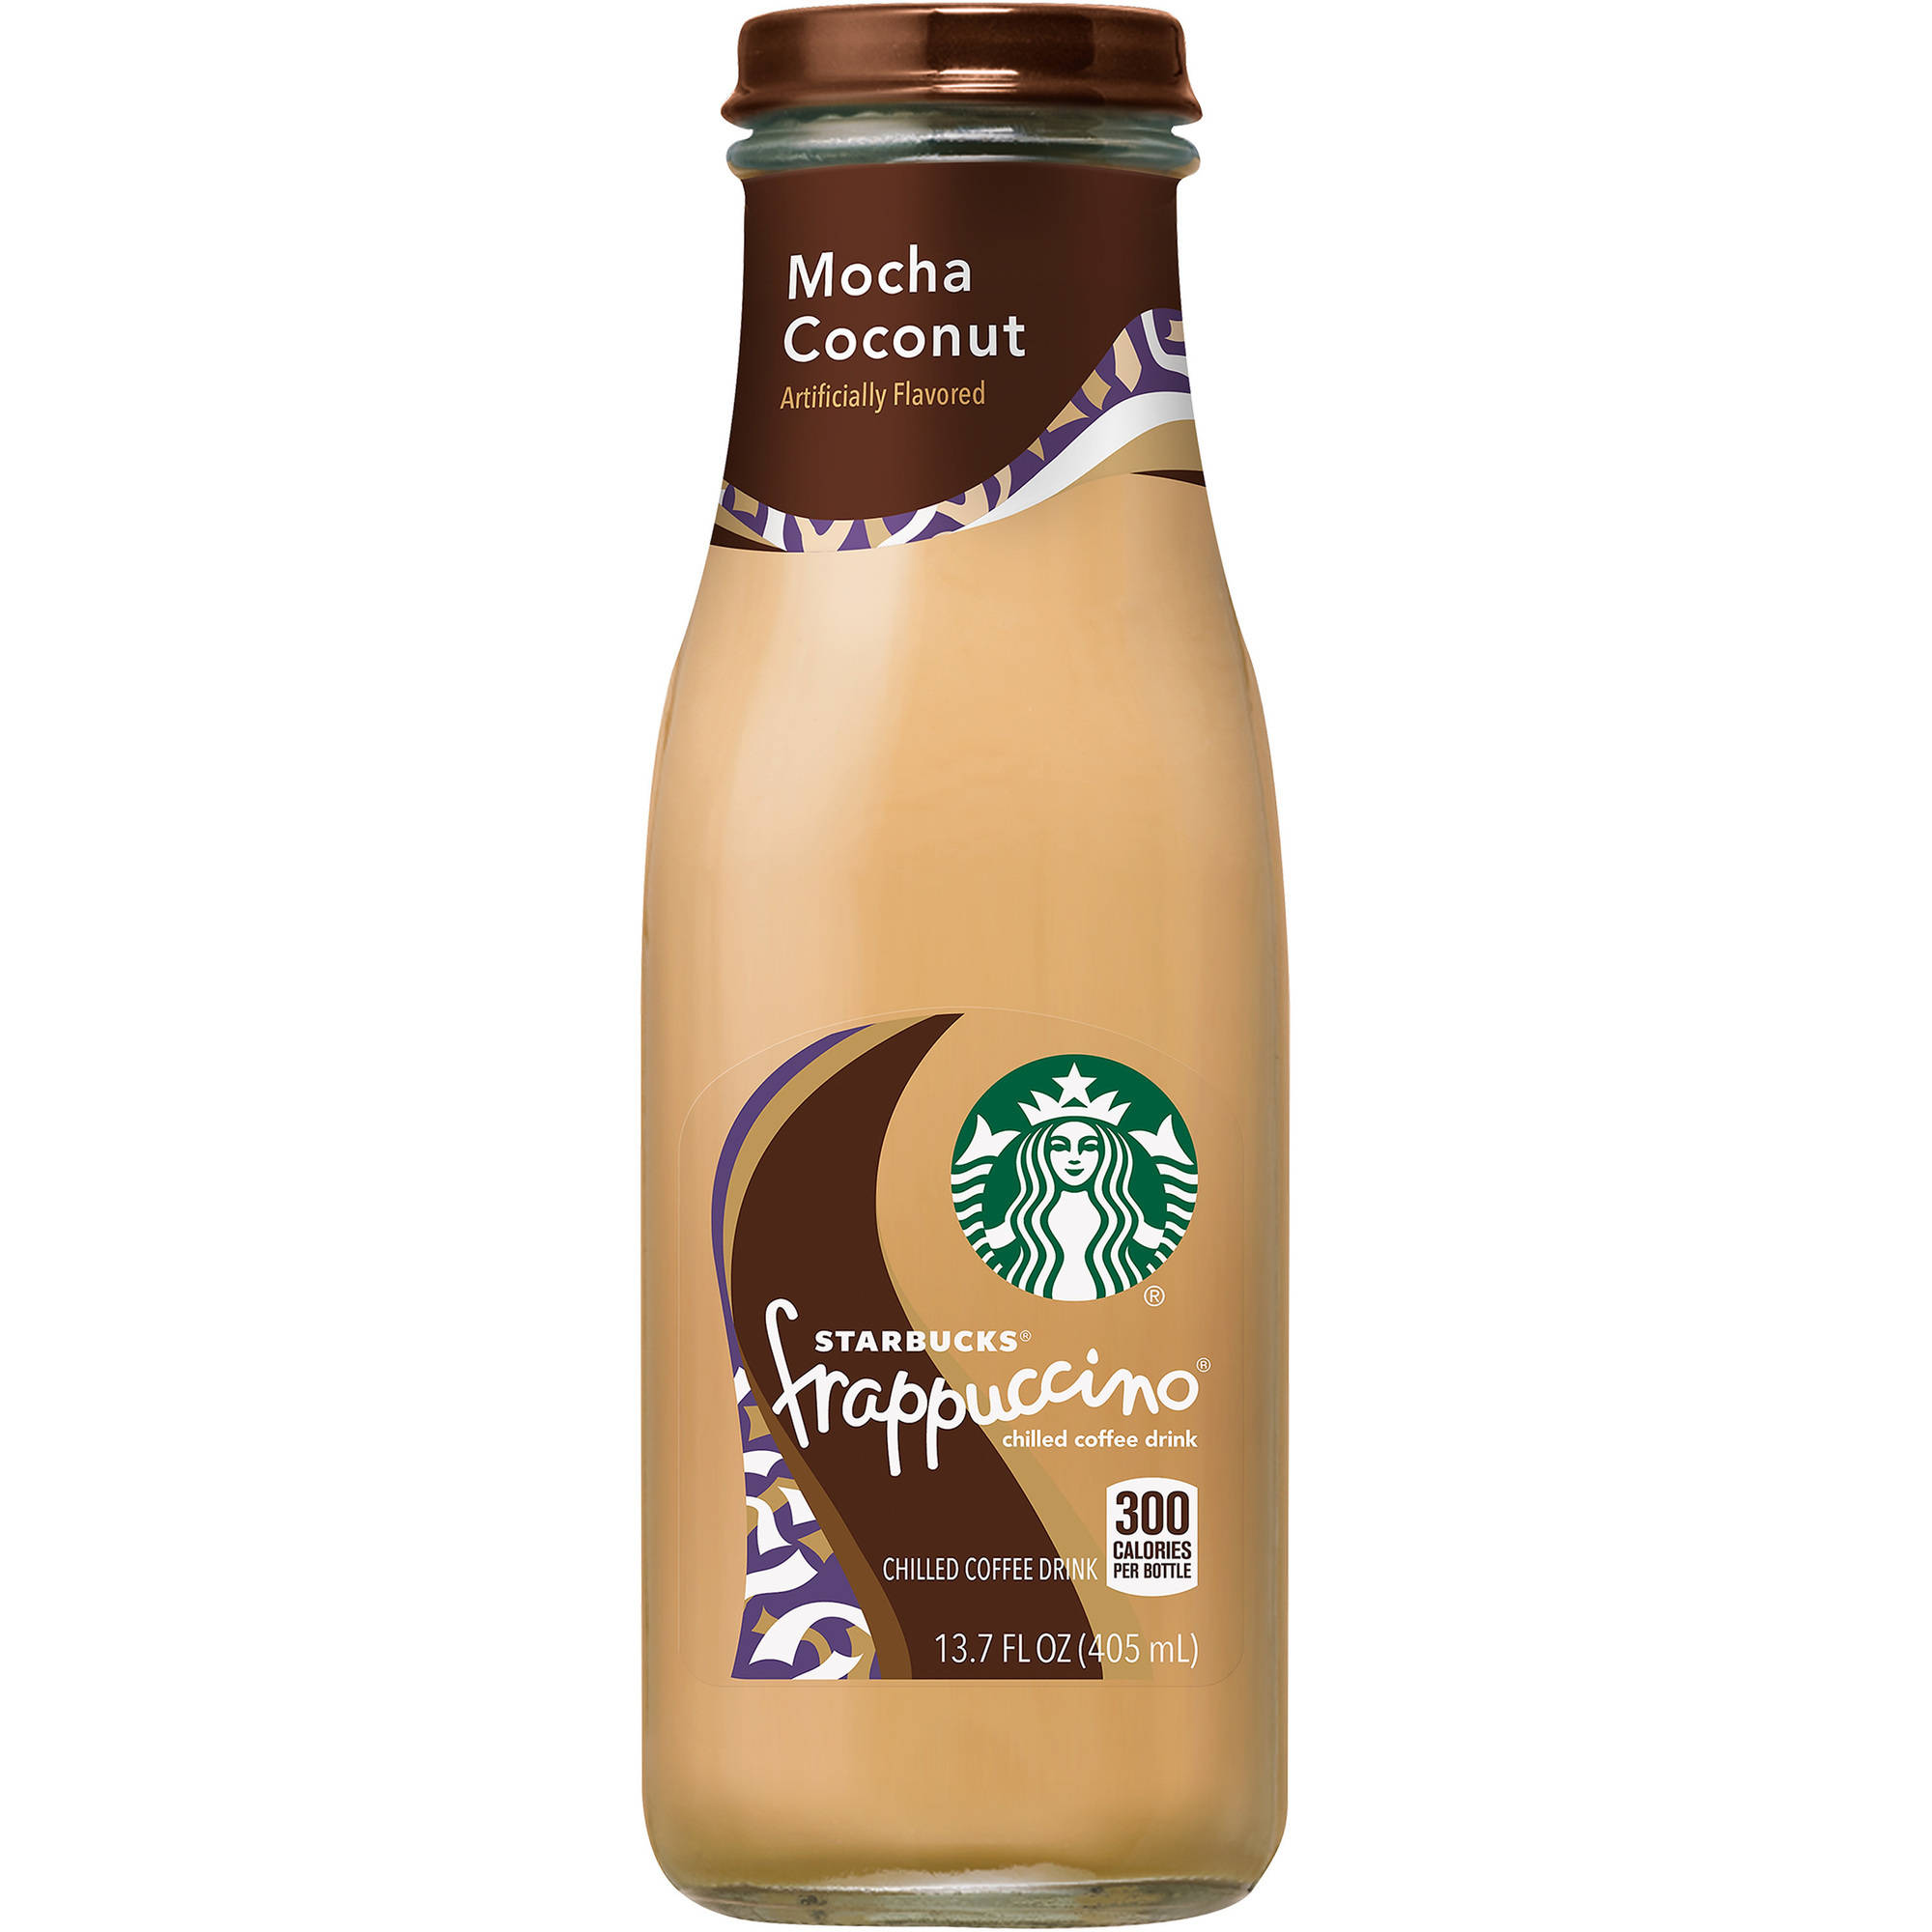 Starbucks Frappuccino Mocha Coconut Chilled Coffee Drink, 13.7 fl oz